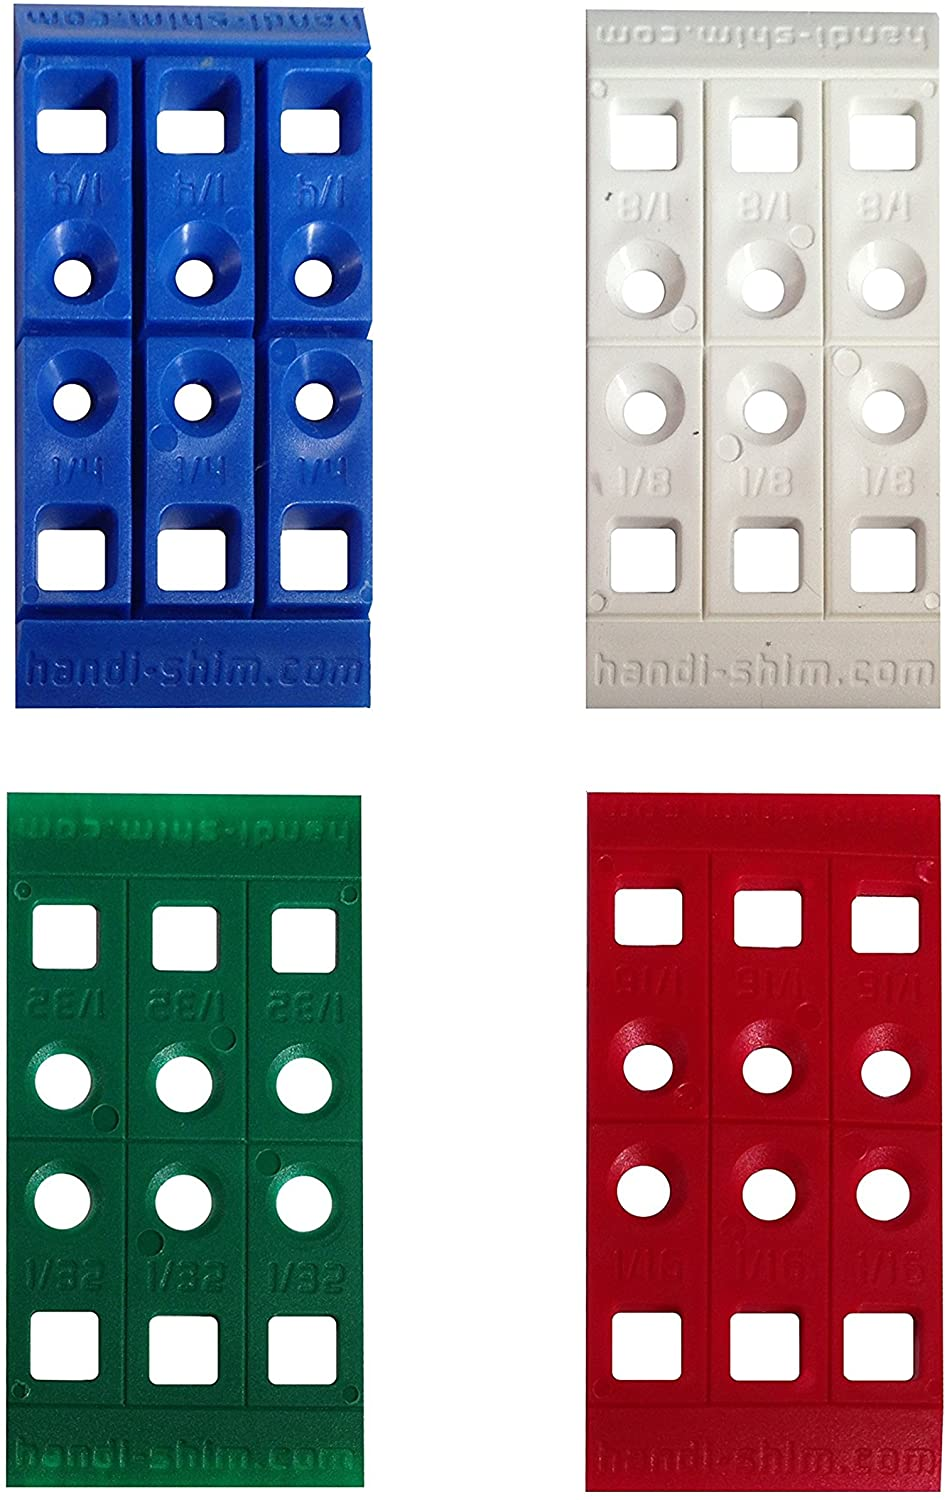 Handi-Shim Heavy Duty Reusable Plastic Construction Shims for Spacing, Leveling, Plumbing and more - 100 Piece Assorted Pack (4 sizes)